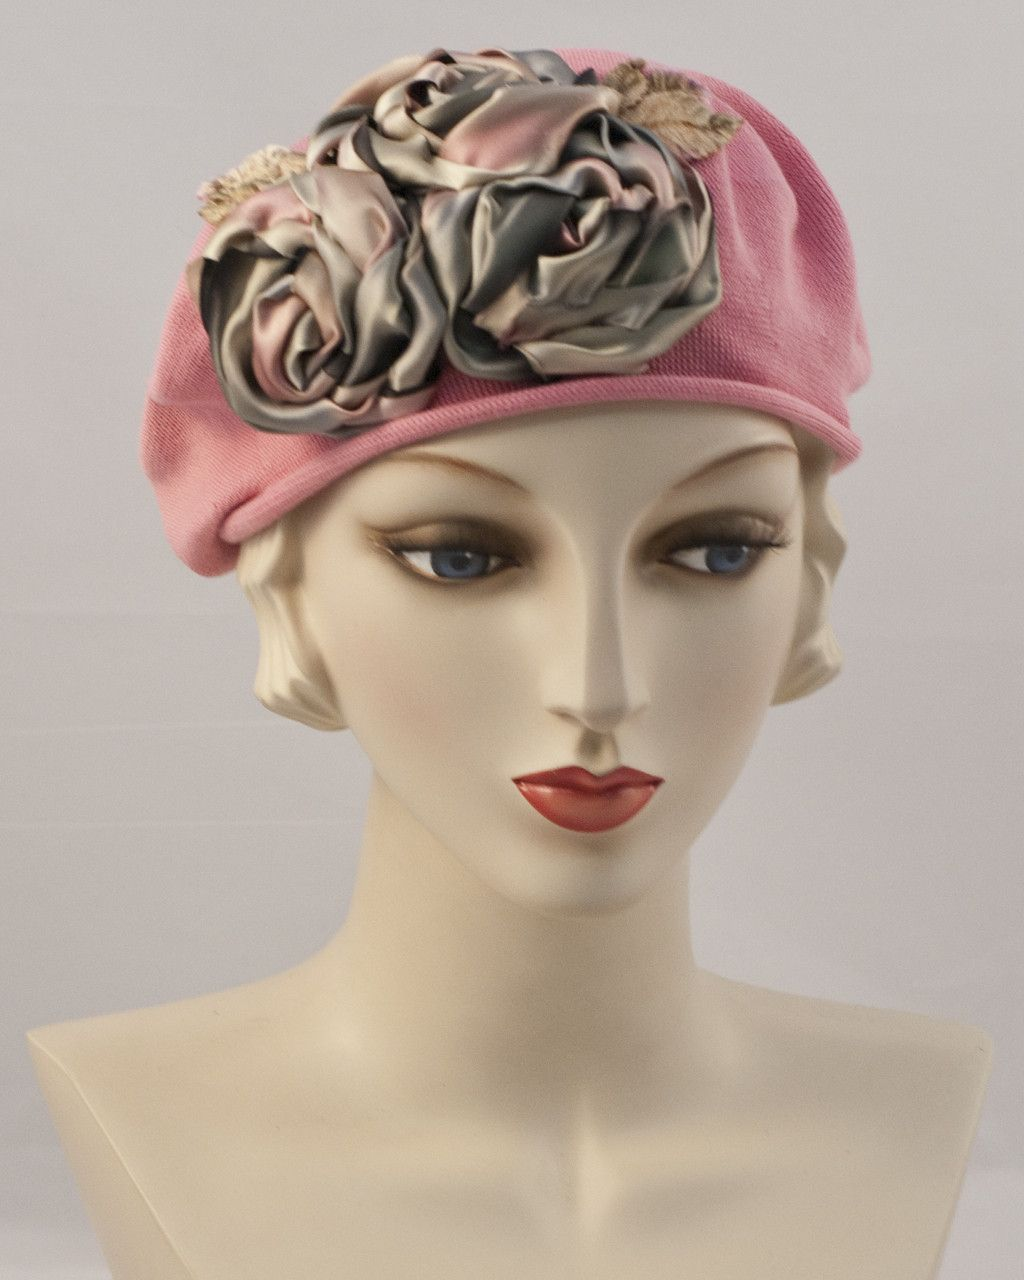 61c6e8ccd2e825 Louise Green hat – Louise Green Millinery | laura's obsession with ...